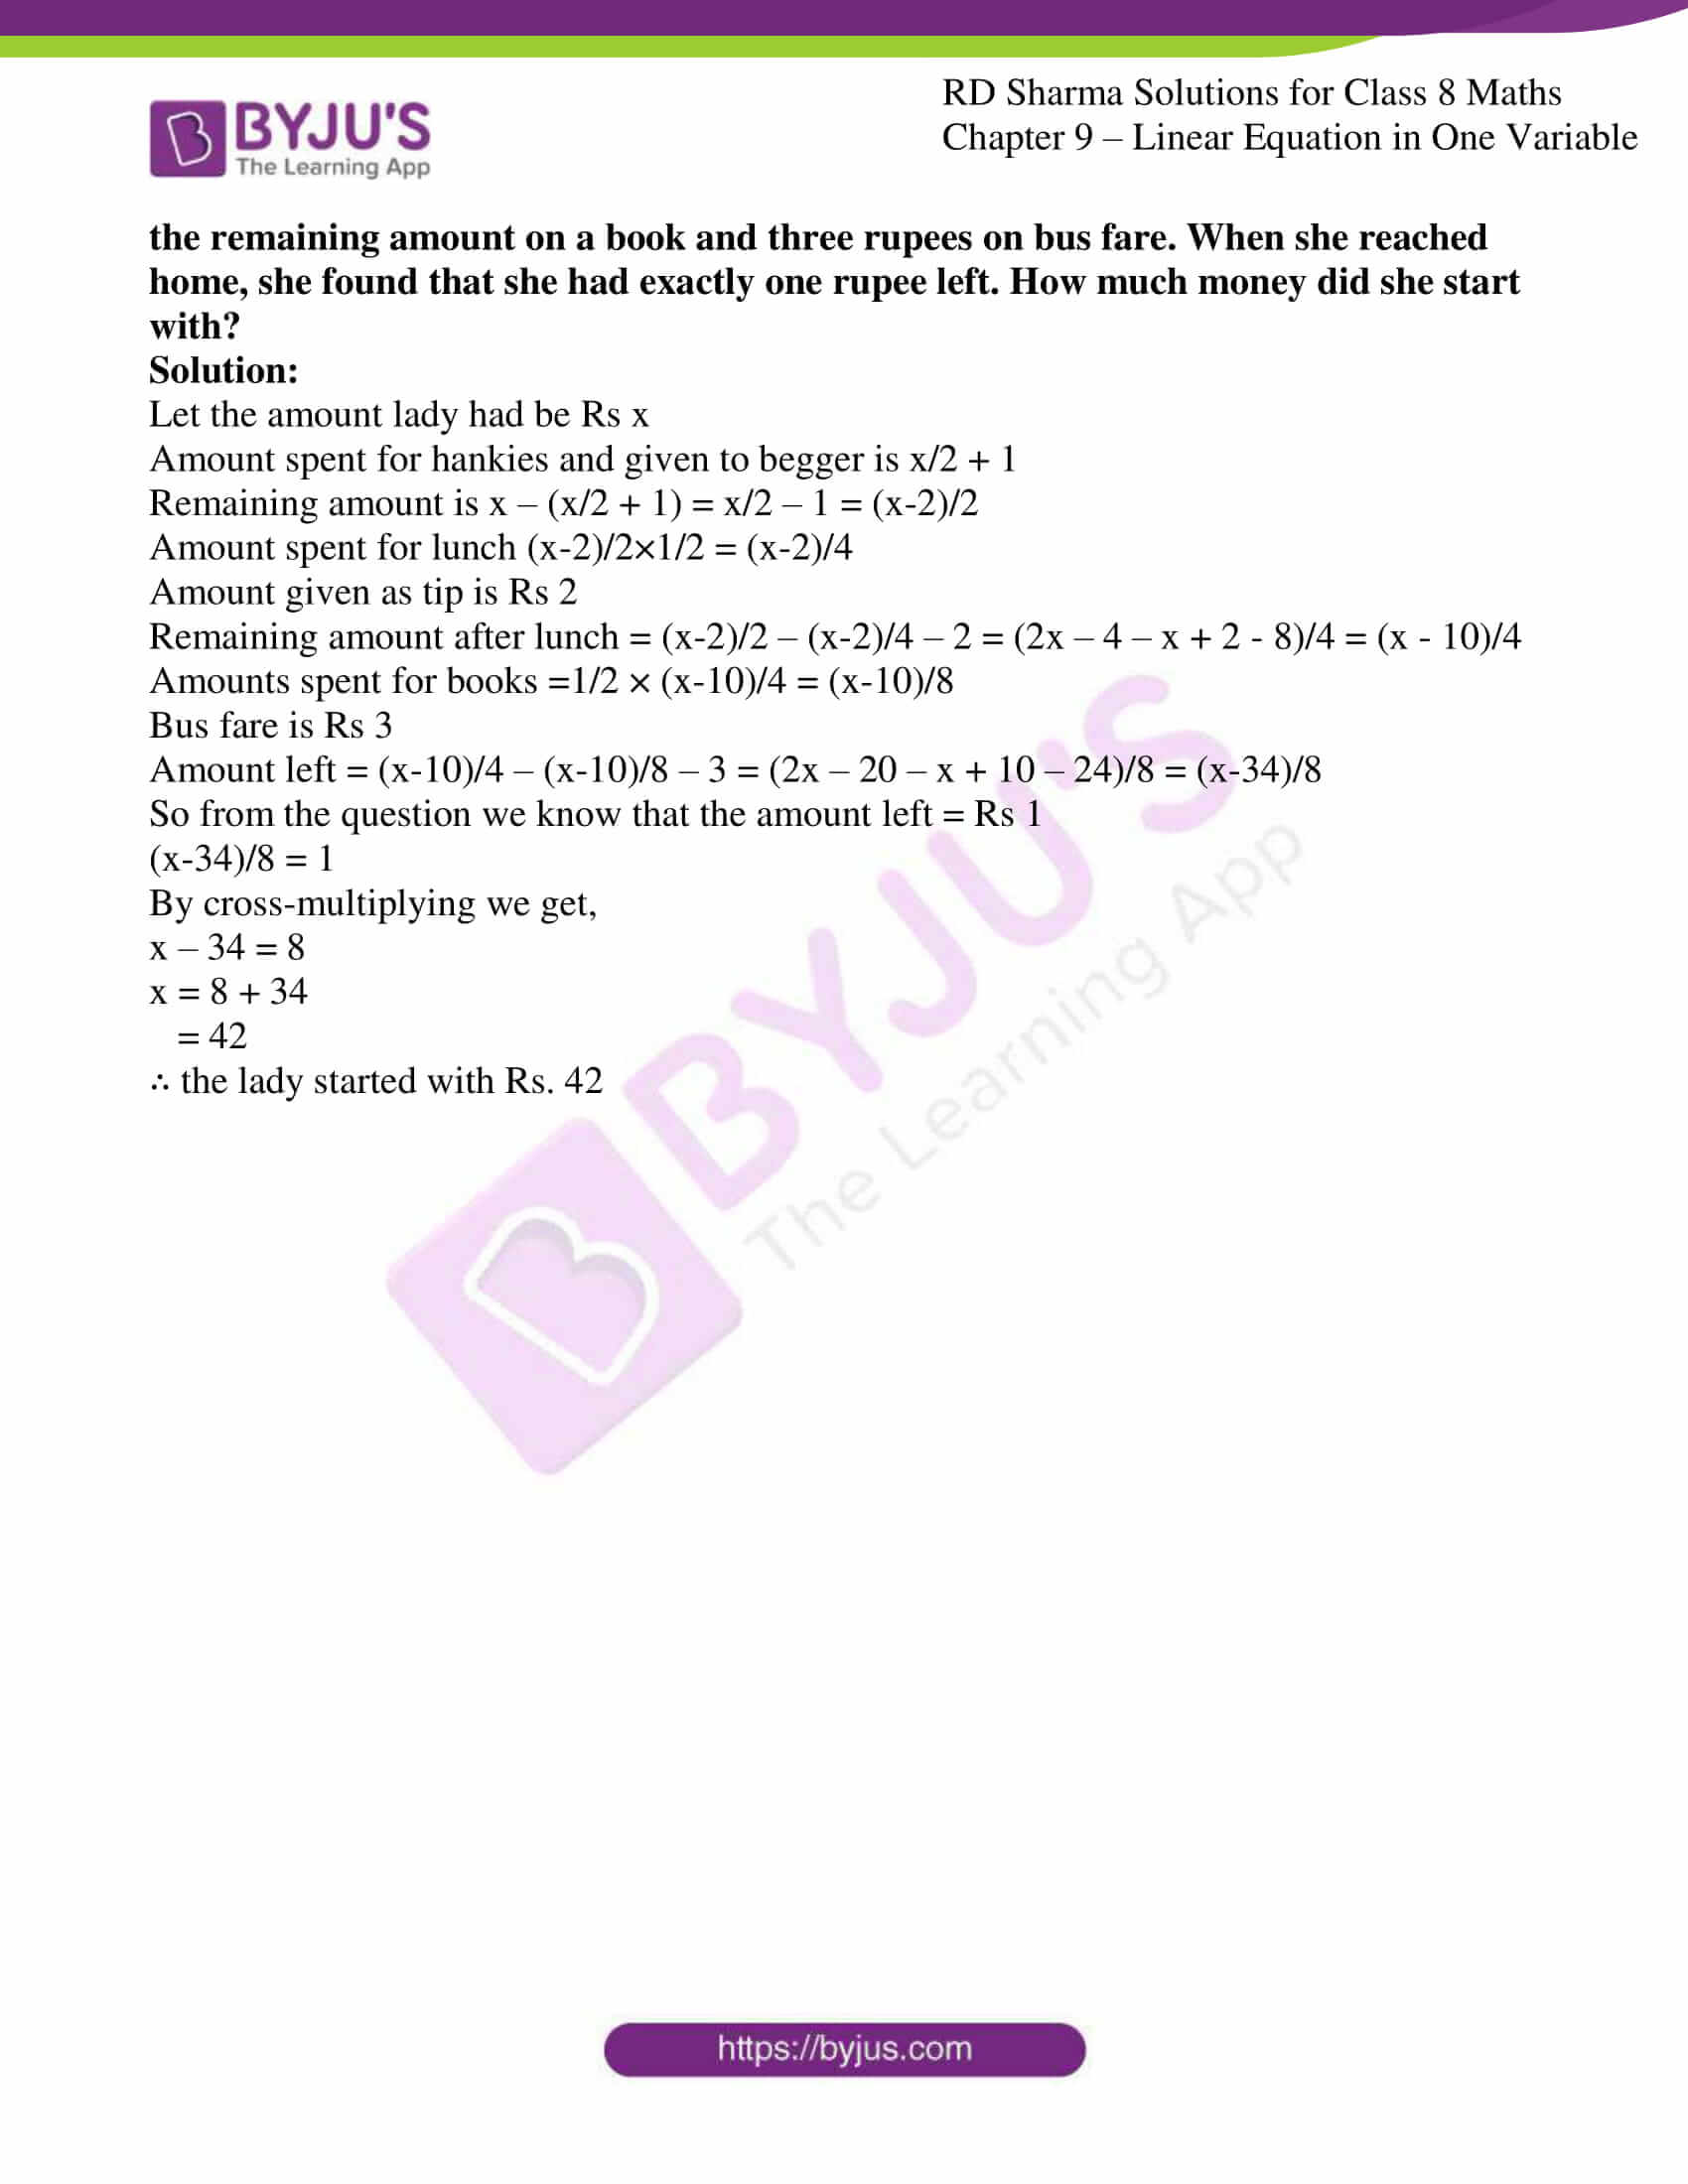 rd sharma class 8 maths chapter 9 exercise 4 13